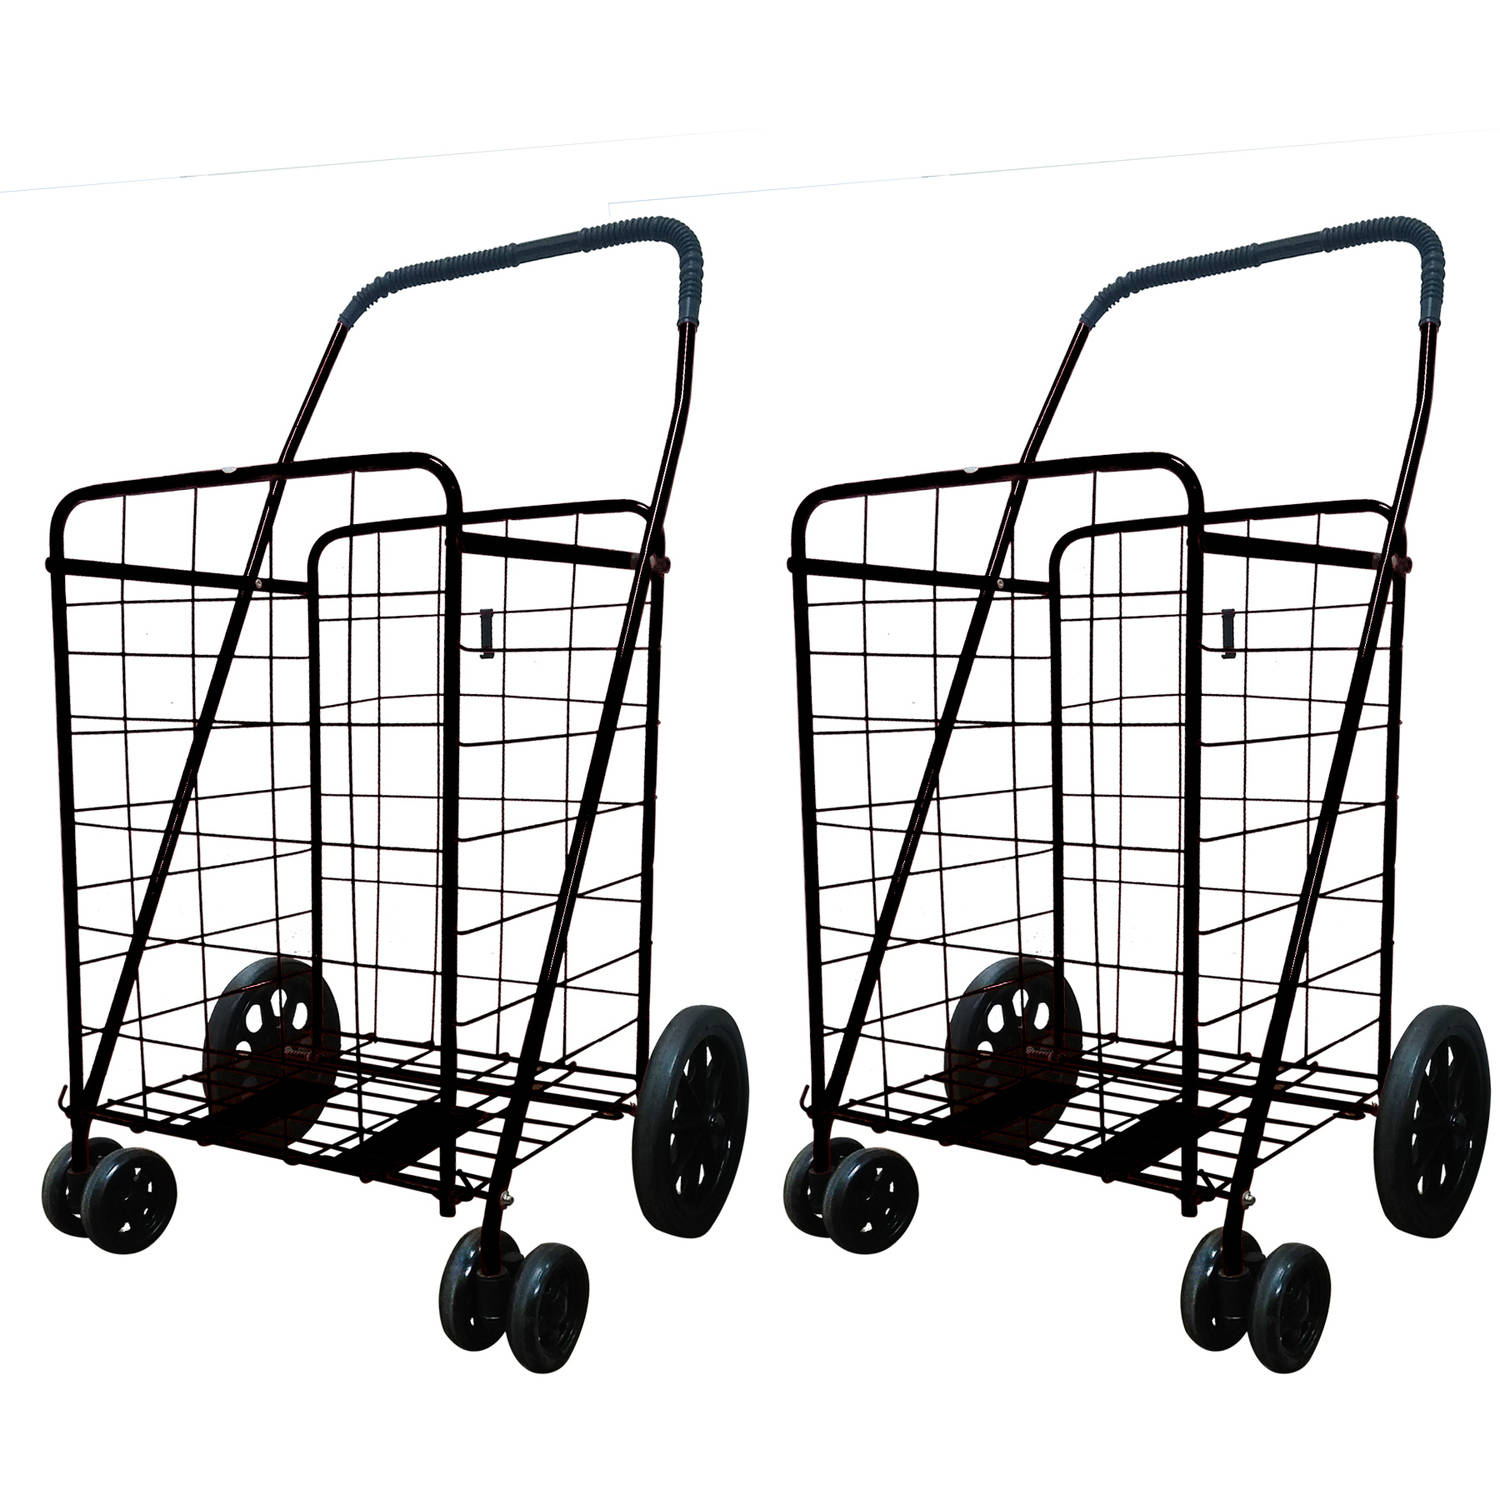 2 Jumbo Folding Shopping Carts, Fold Flat for Storage with Front Rotating Wheels